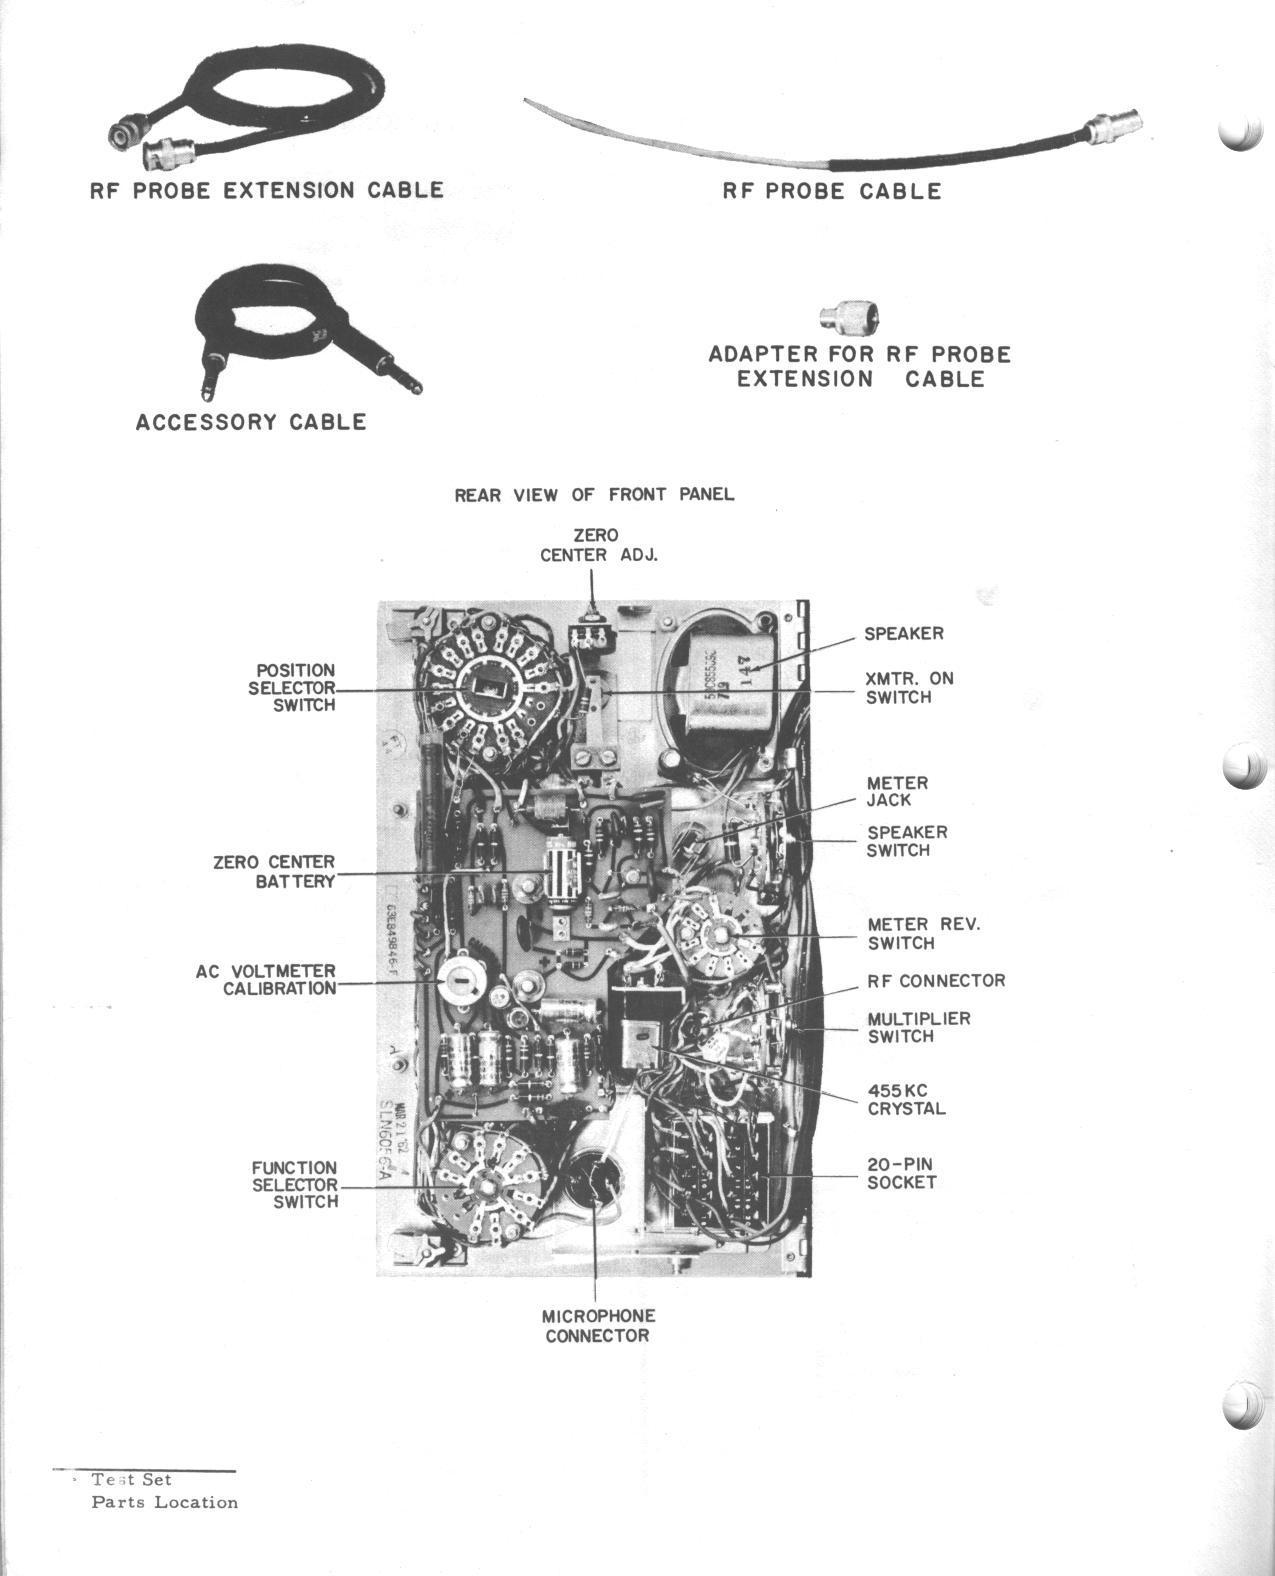 Motorola Test Set Information Index Crystal Tester Diagram A Scan Of Page From The Manual Showing Just Where Infamous N Cell Is Located